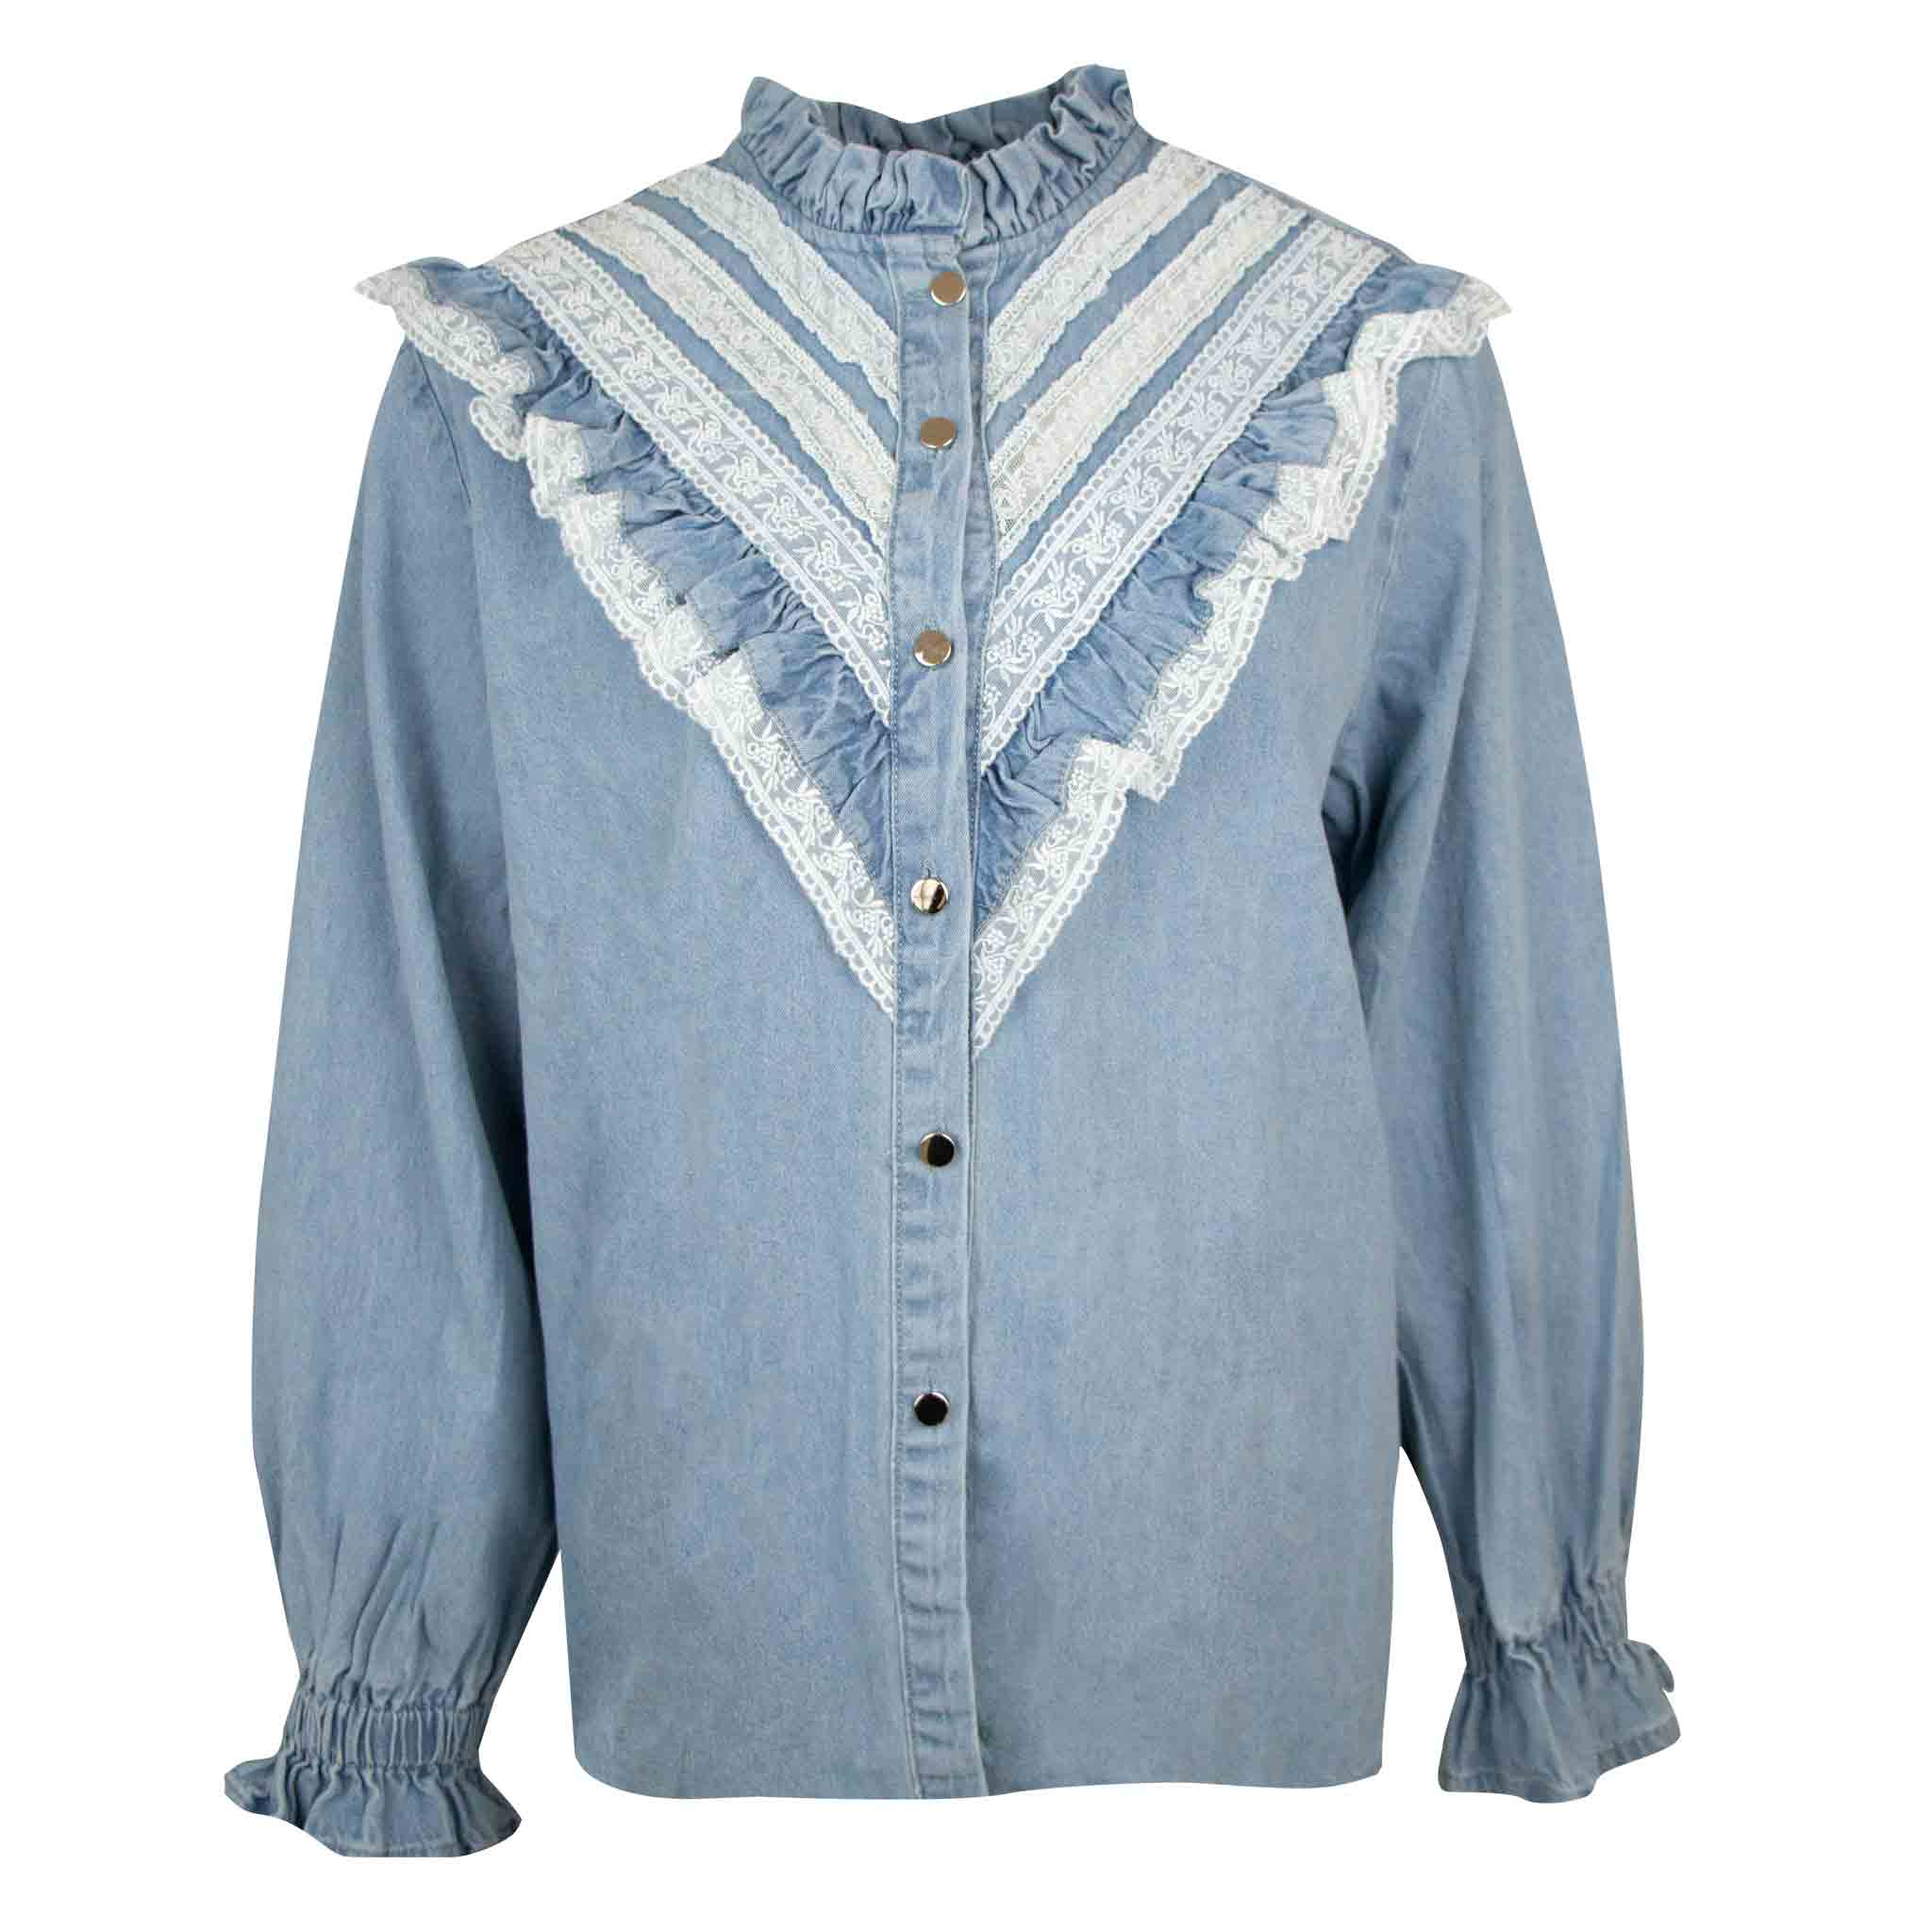 Denim ruffle blouse